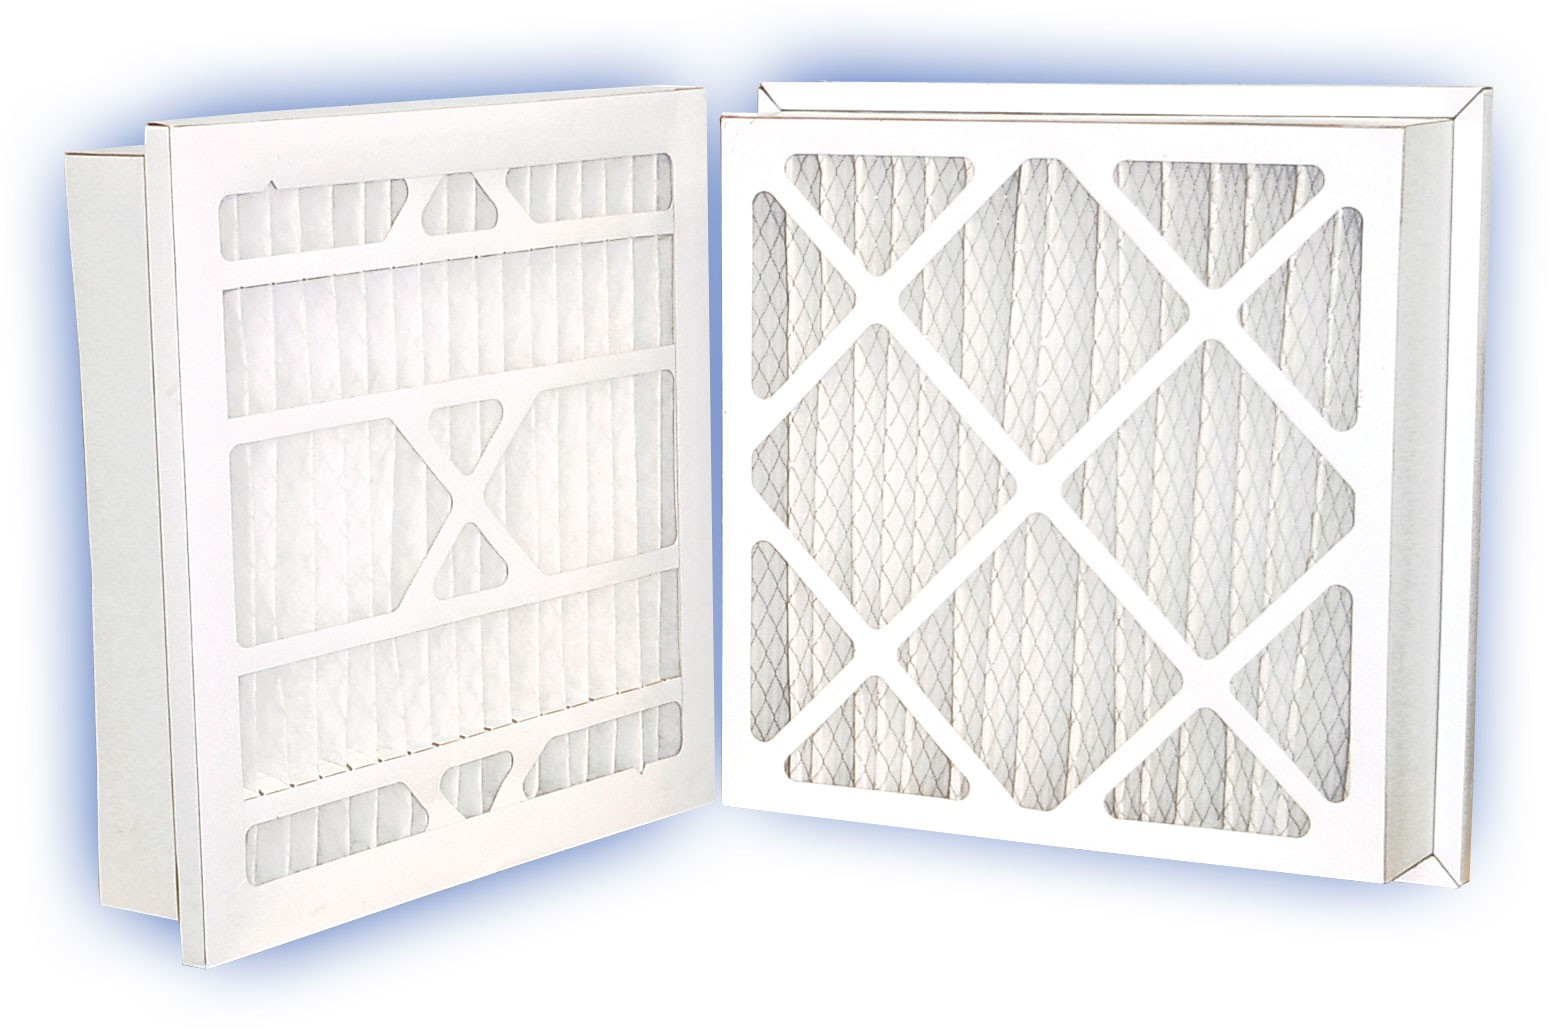 12 x 24 x 5 - Synergy Return Grille Filter - MERV 8